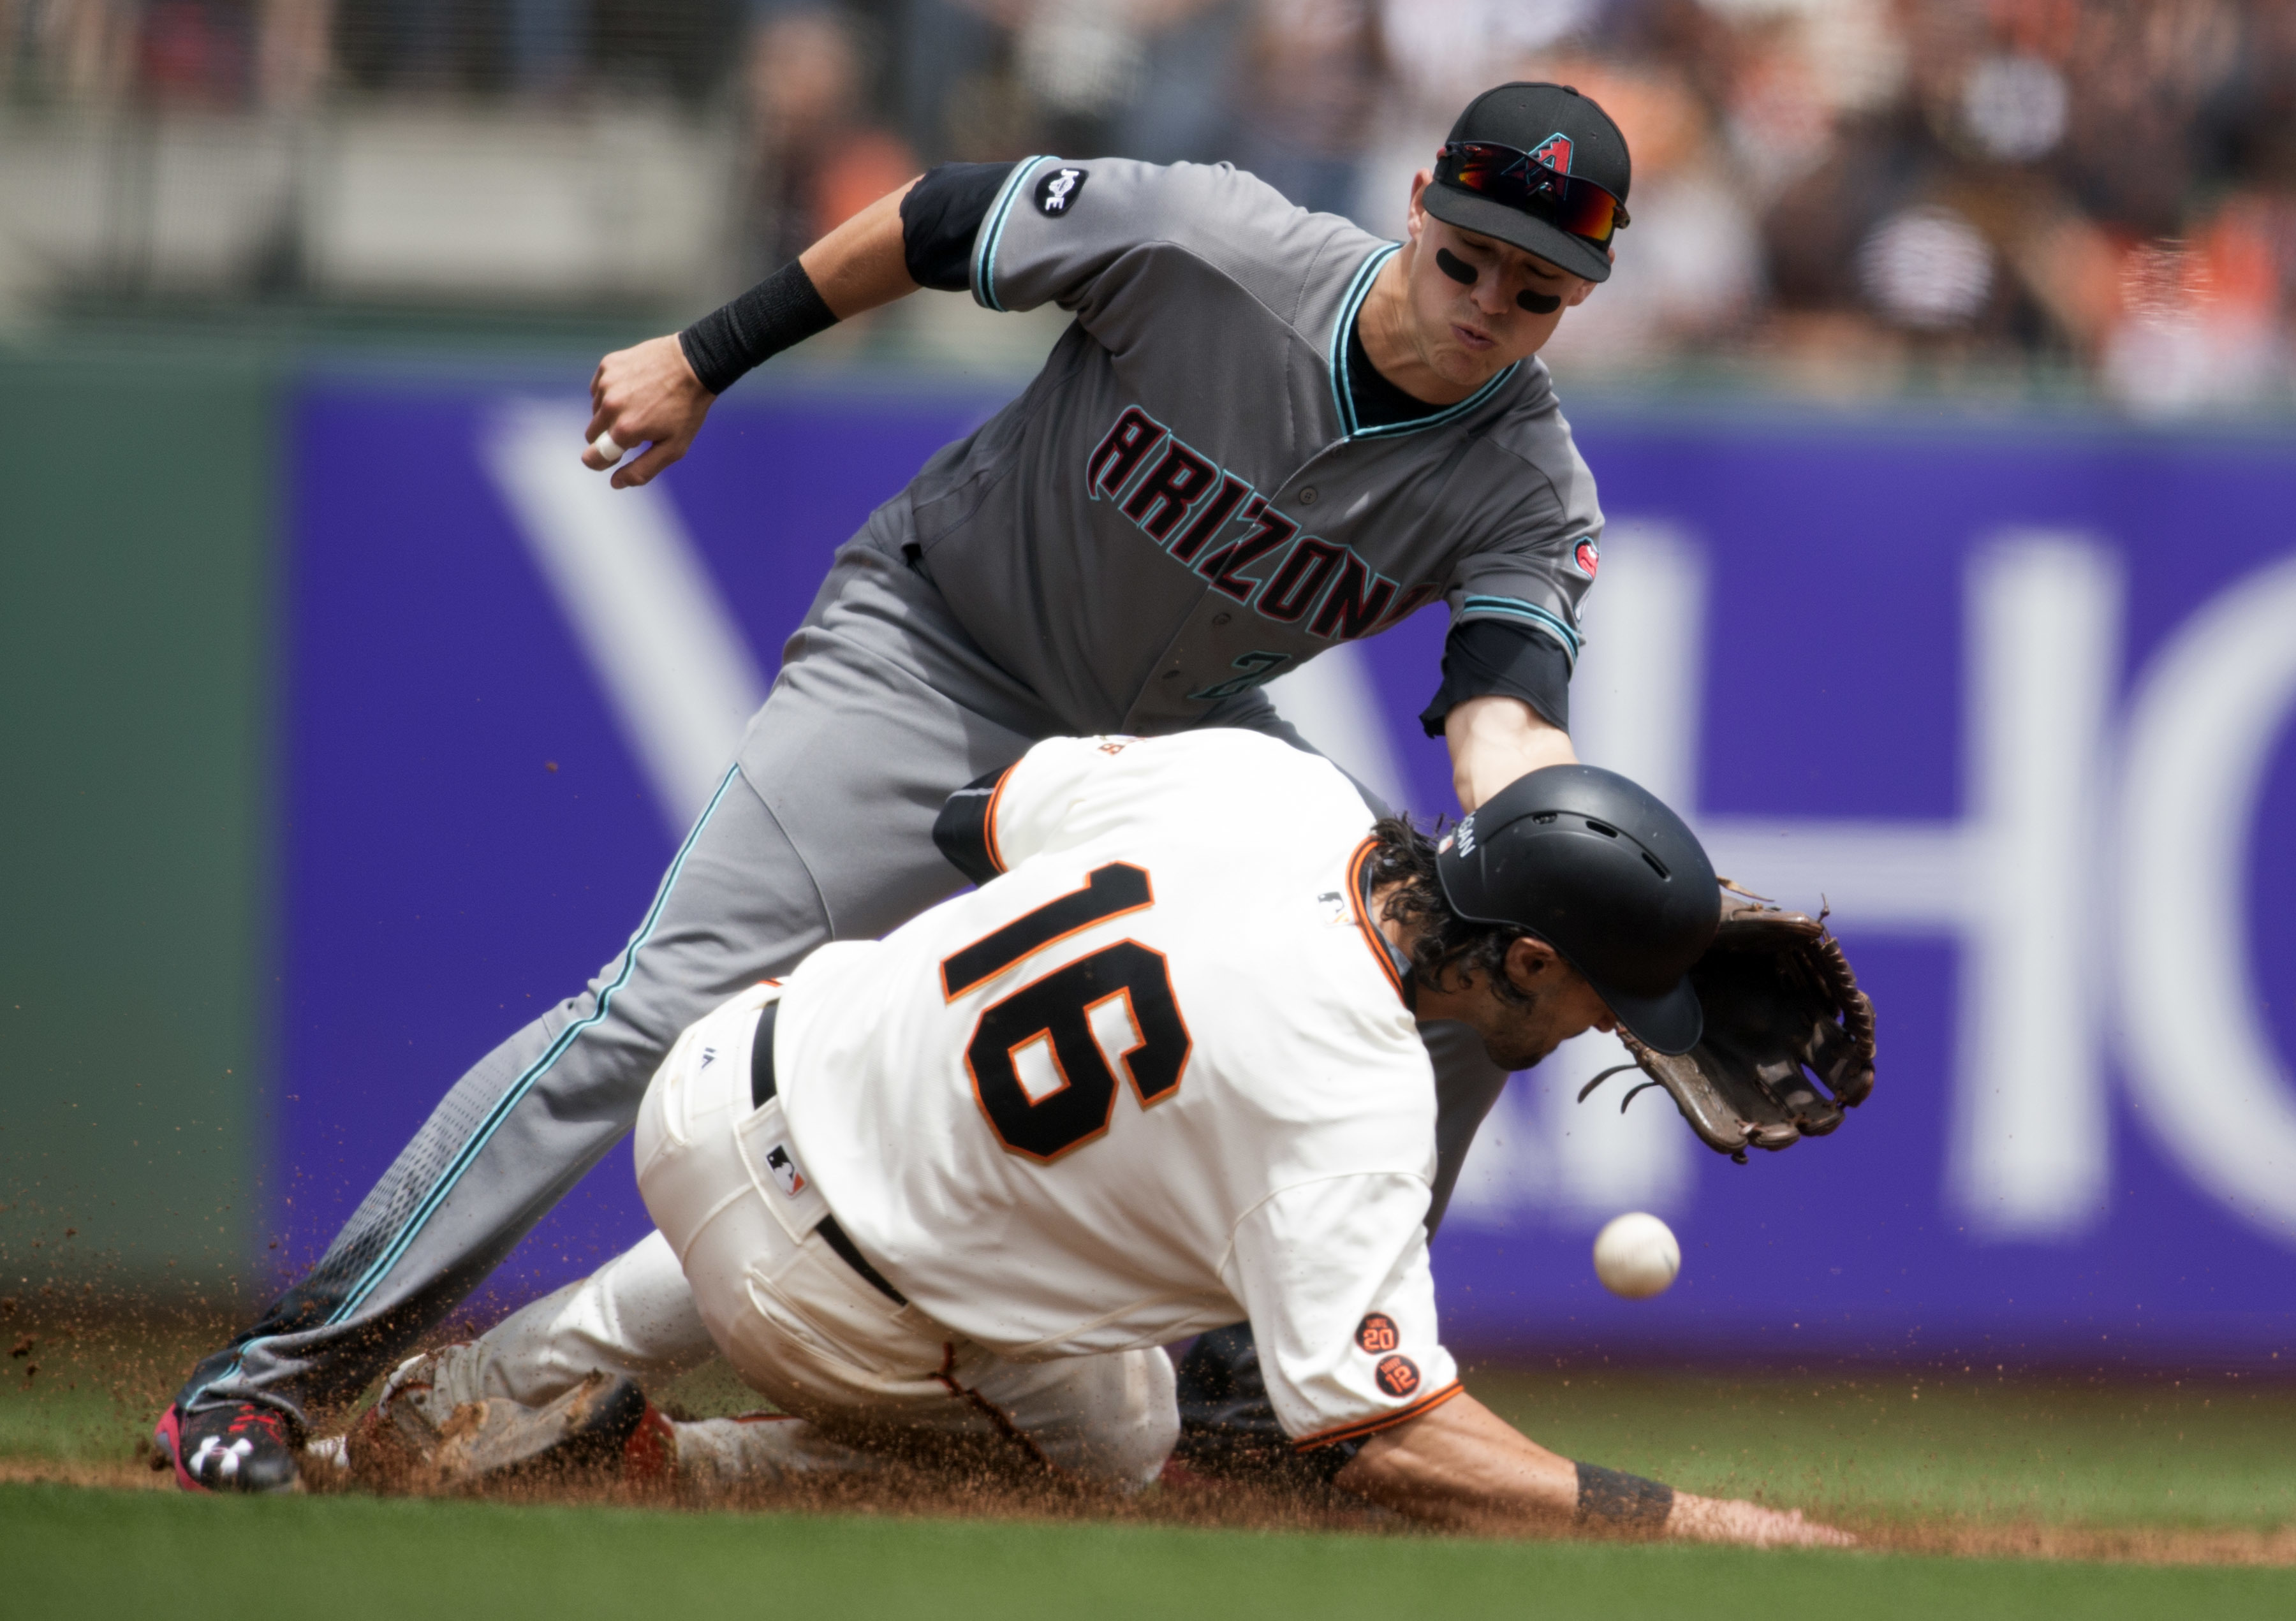 San Francisco Giants' Angel Pagan is struck by the relay throw intended for Arizona Diamondbacks' Nick Ahmed as Pagan steals second base during the third inning of baseball game on Saturday, July 9, 2016, in San Francisco. (AP Photo/D. Ross Cameron)